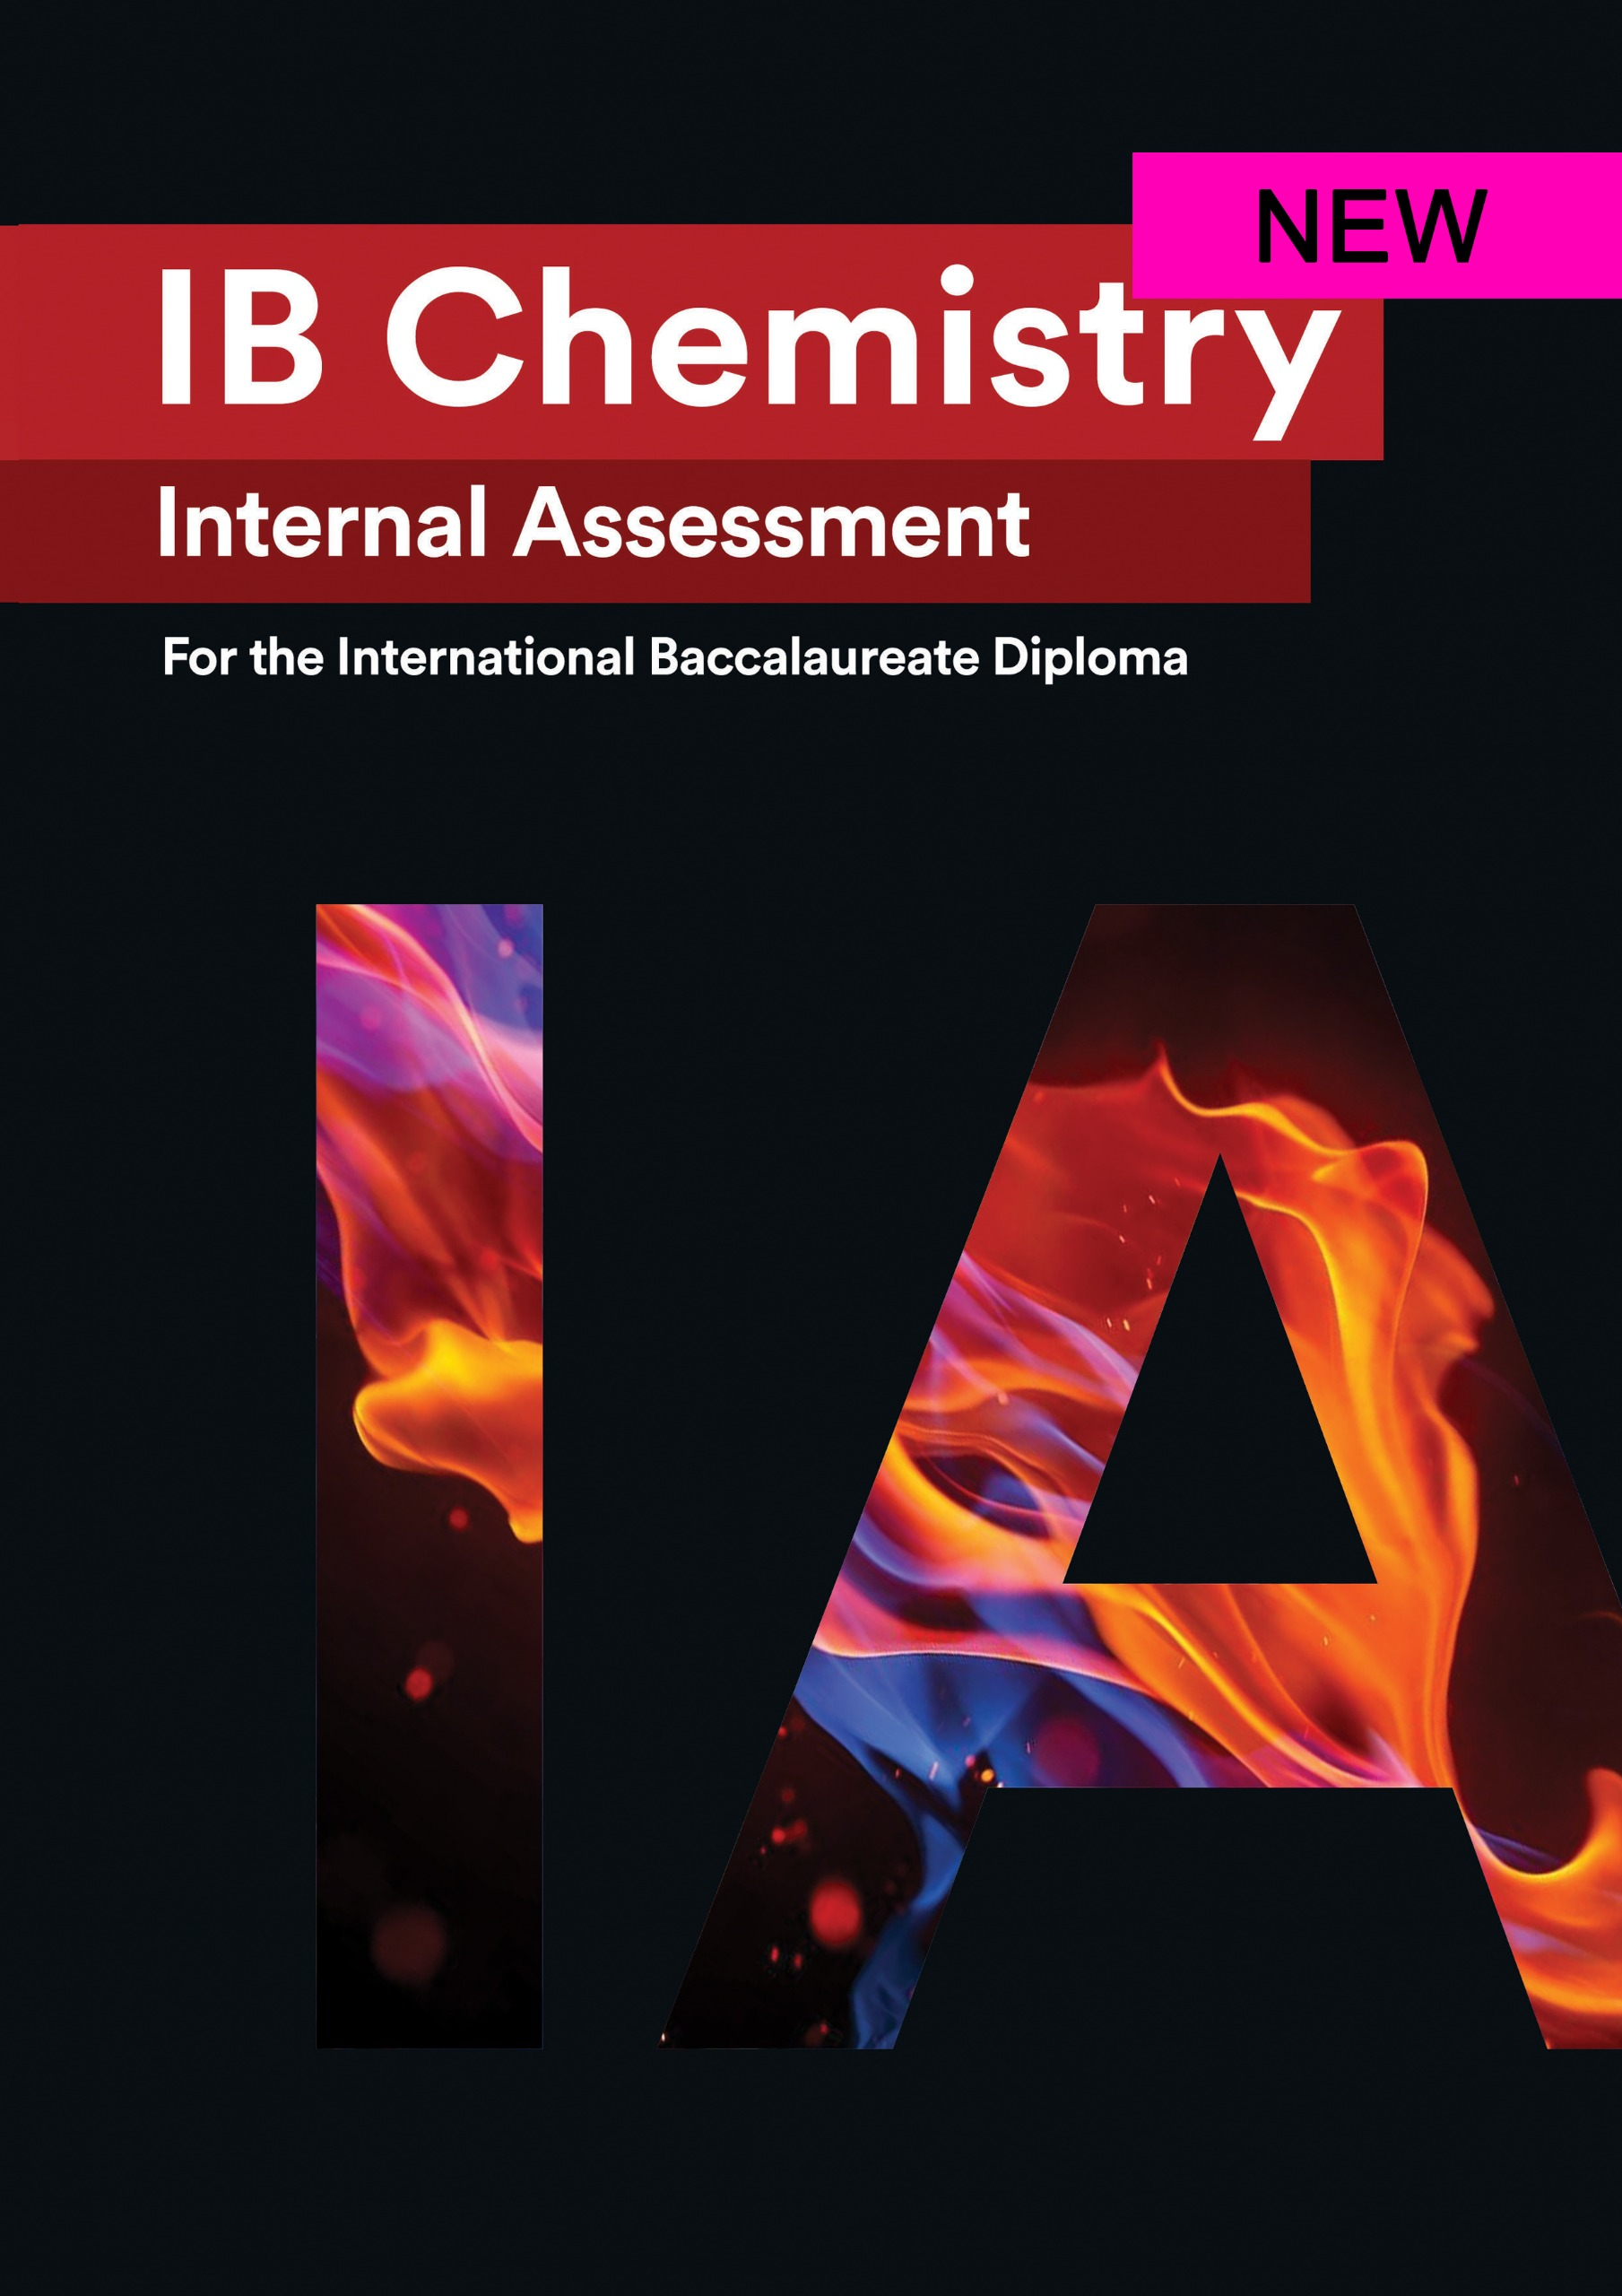 IB Chemistry Internal Assessment [IA]: Seven Excellent IAs for the International Baccalaureate [IB]